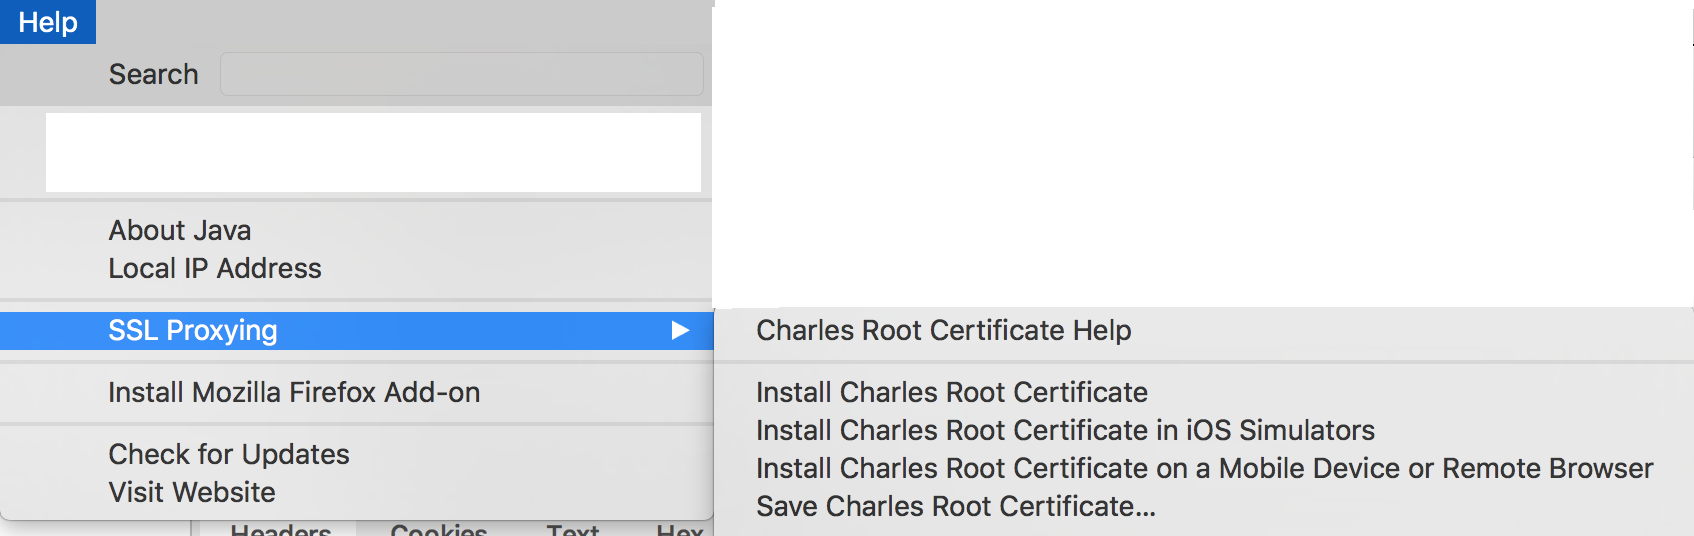 Using Charles Proxy Debugging Network On Ios Simulator And Iphone